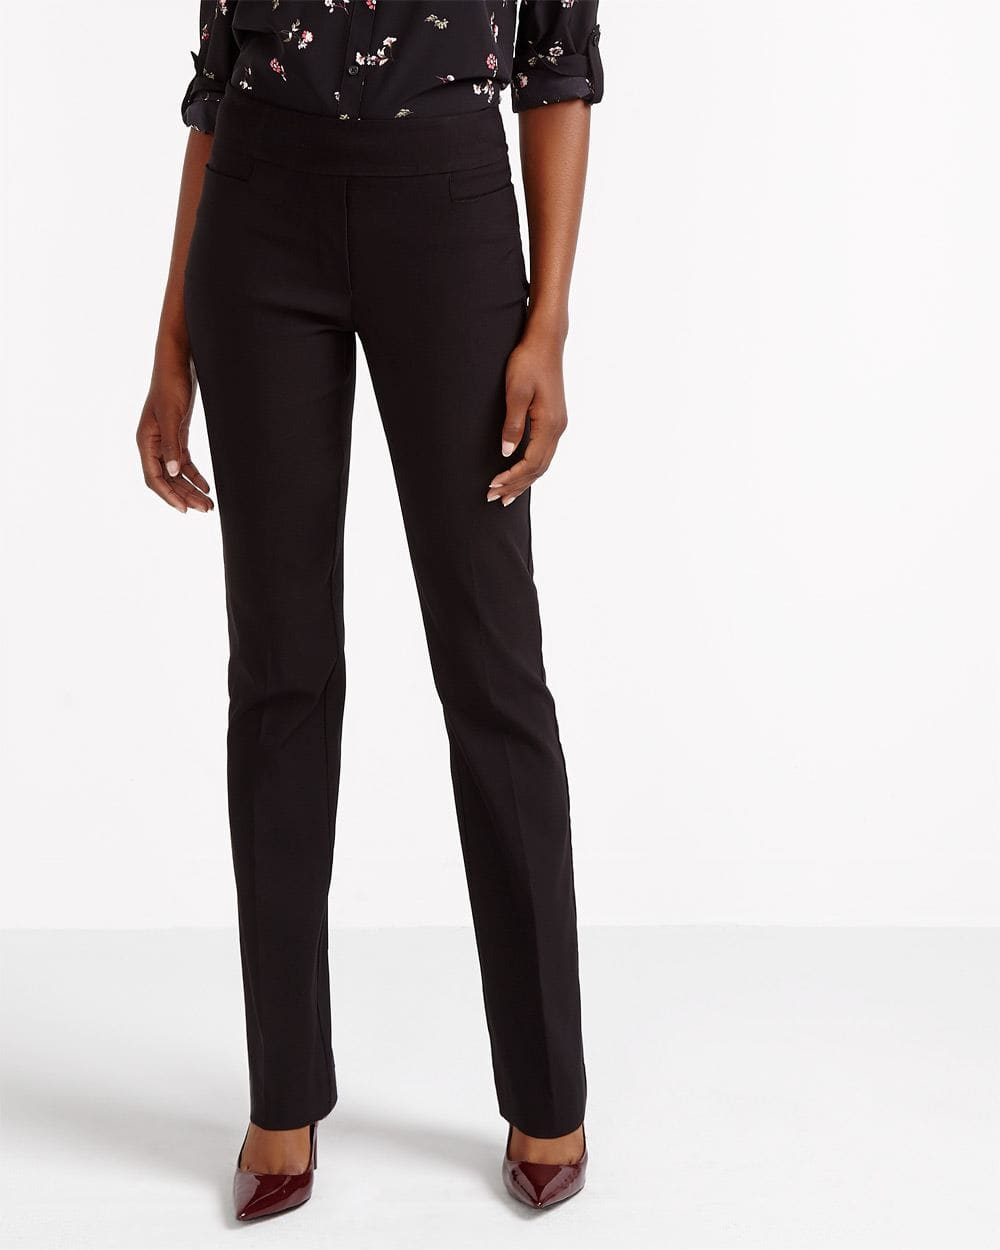 The Tall Iconic Boot Cut Pants